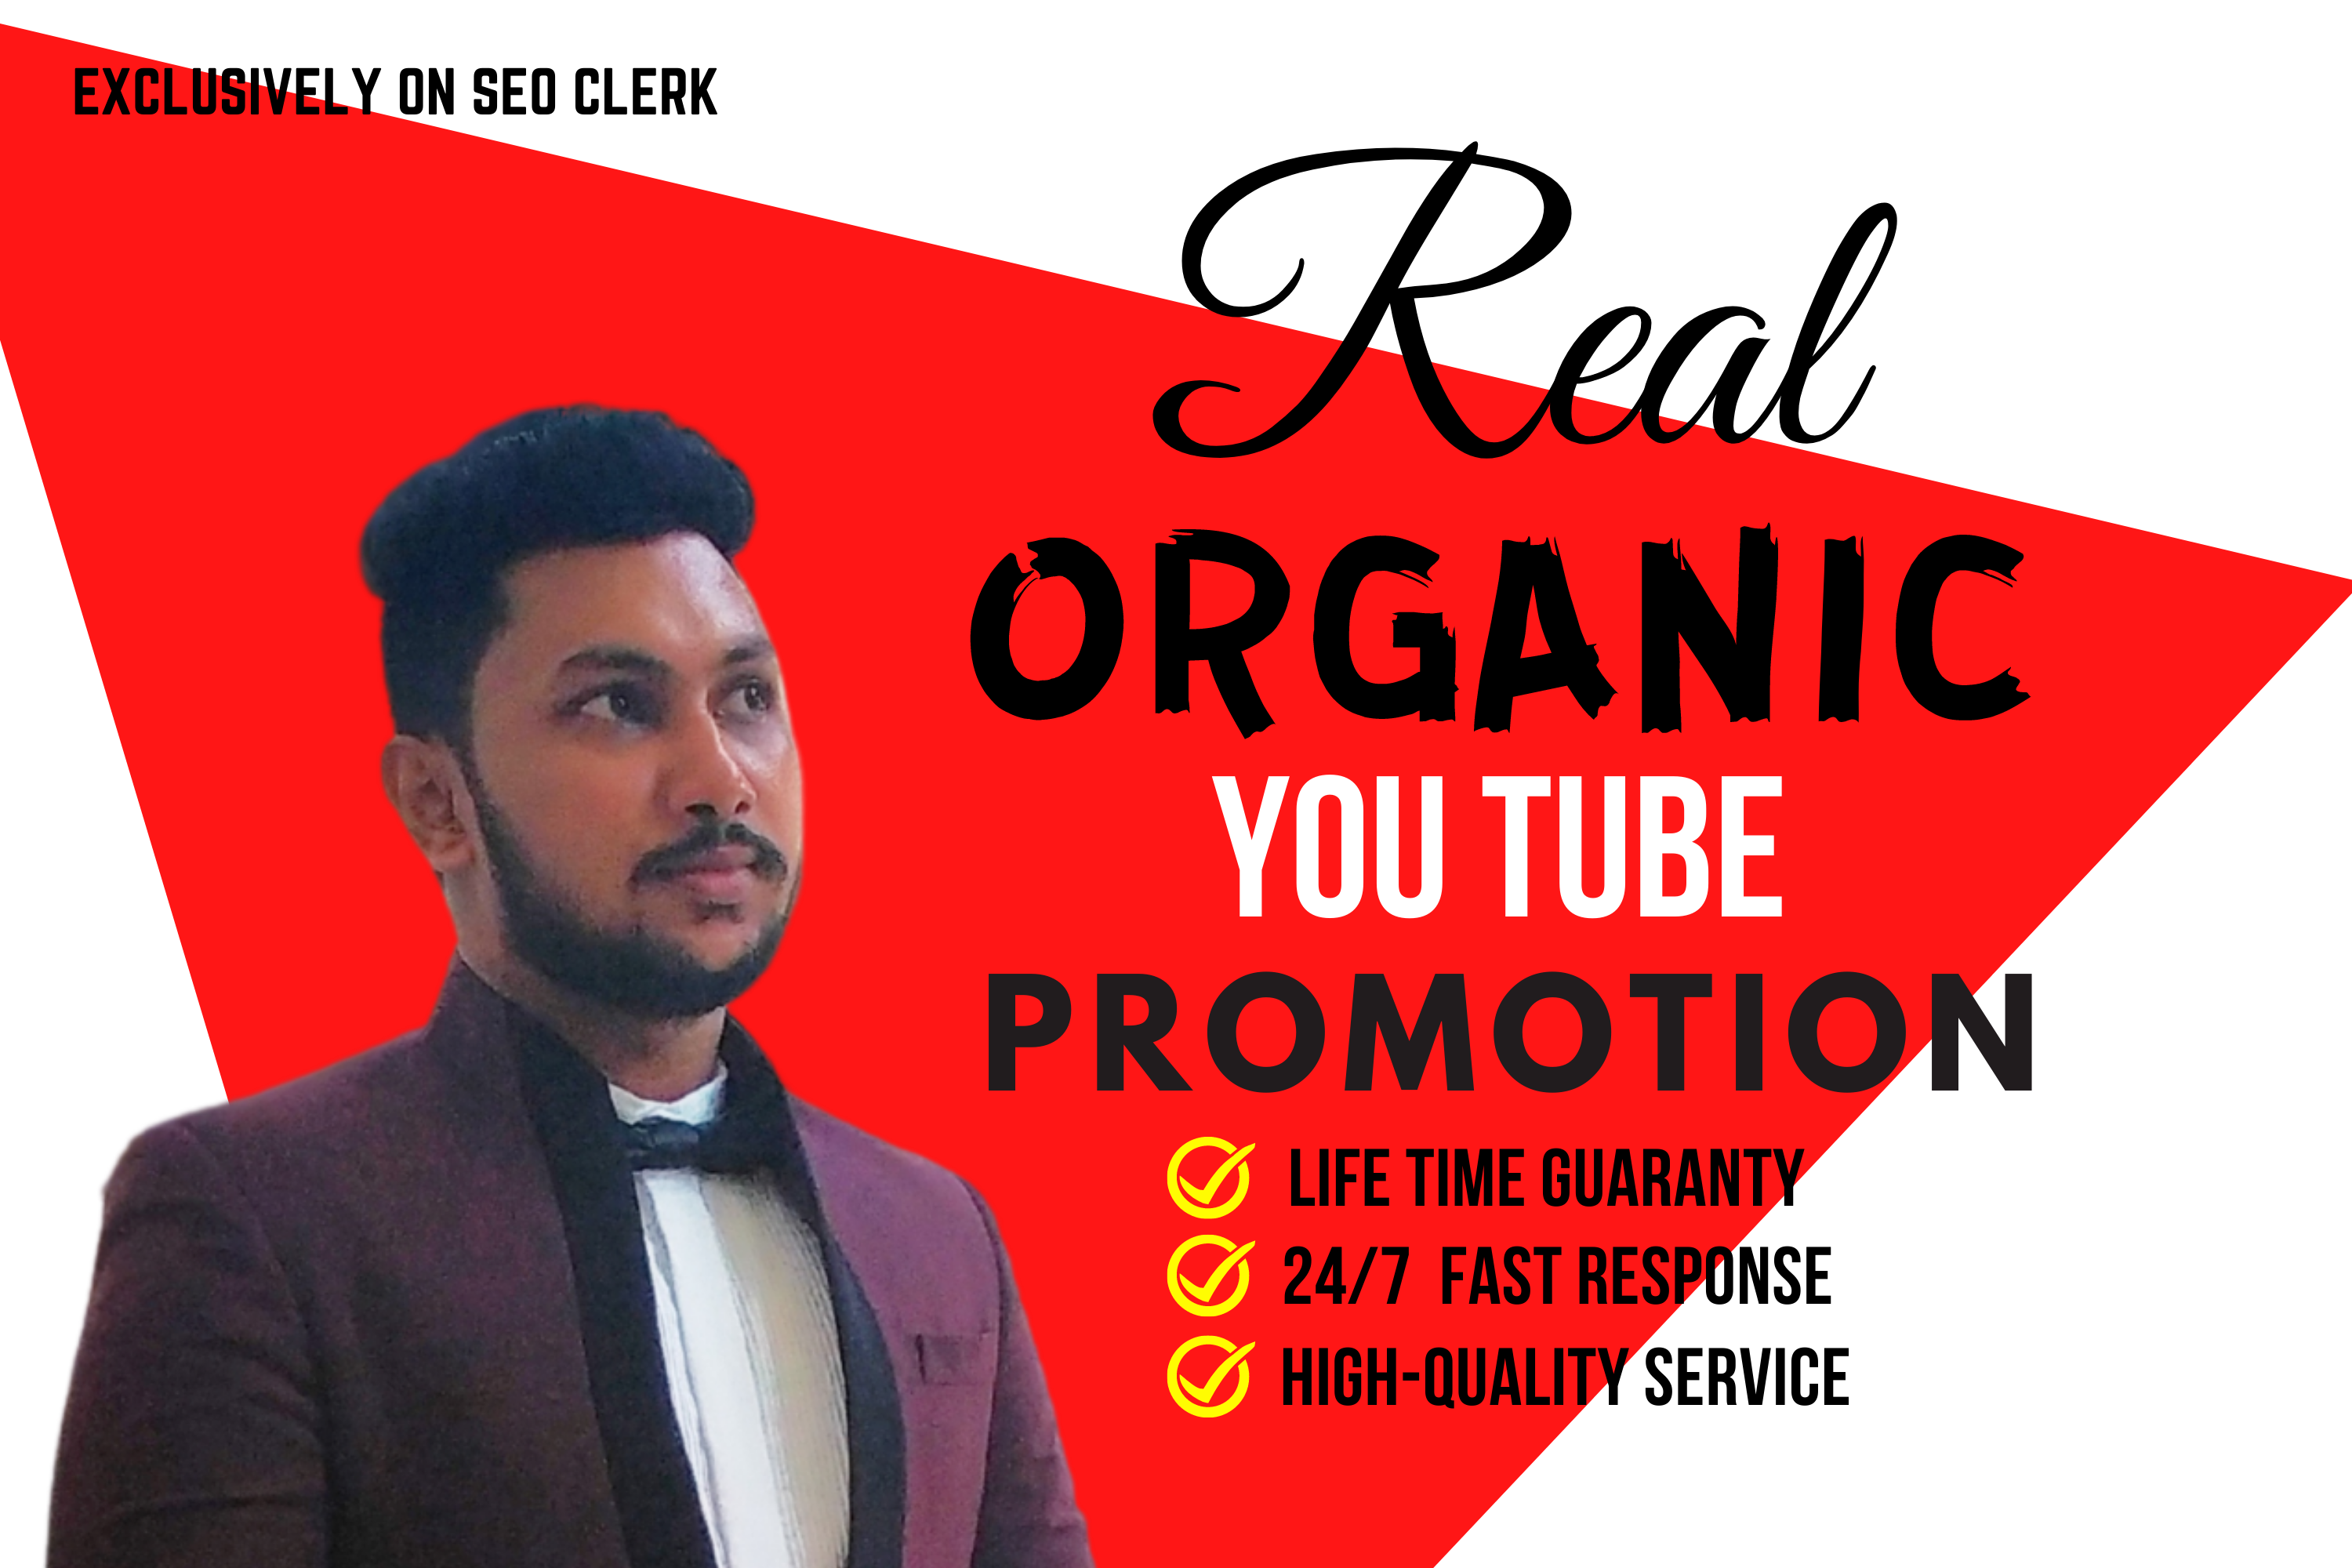 I can do Youtube video Promotion and Marketing for Go Viral